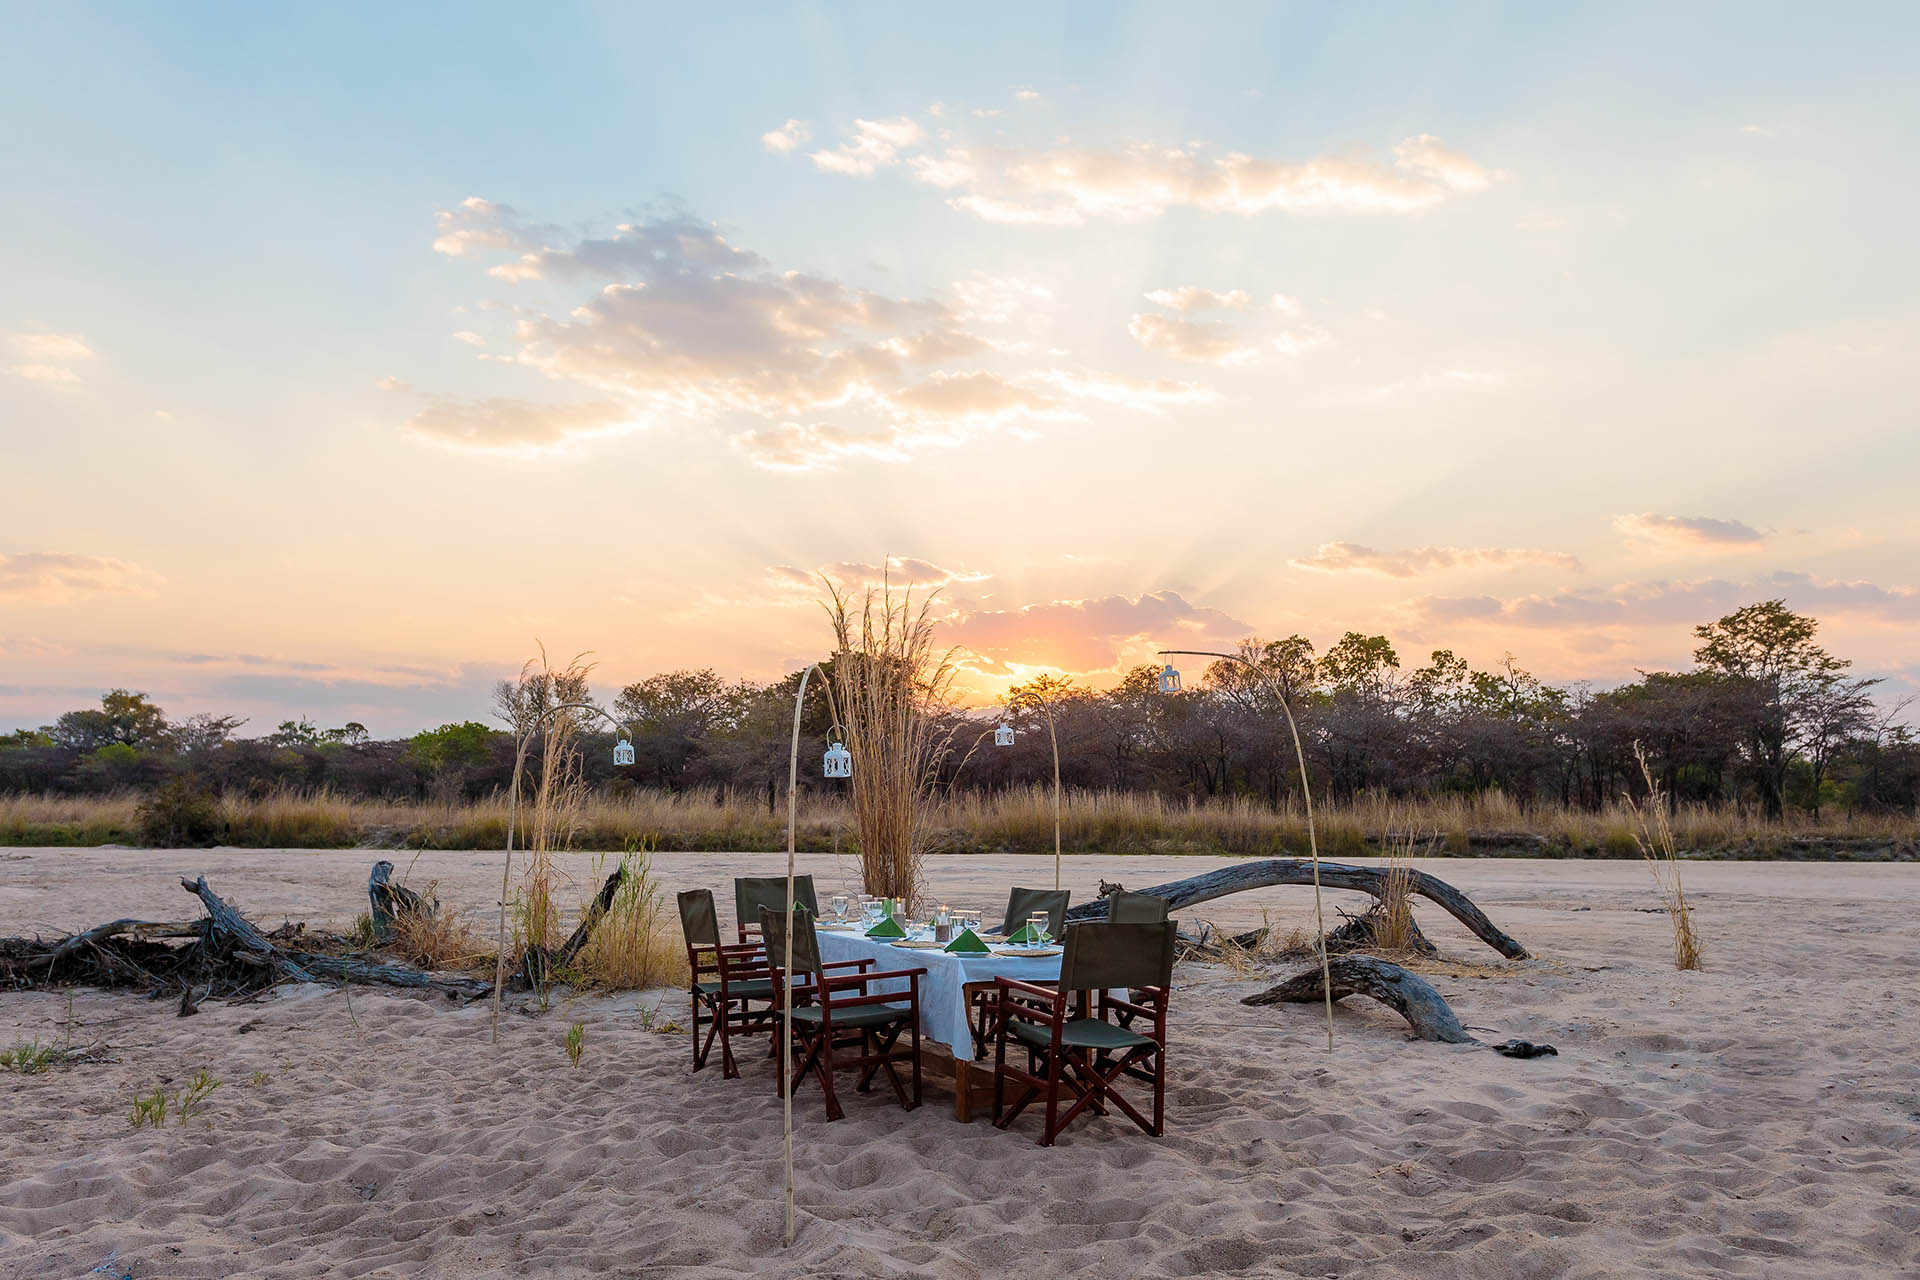 south luangwa national park tours-southern-explorer-15-nights-nights-tours-malawian-style-malawi-adventures-experiences-holidays-specialist-tour-operator-nkonzi-camp